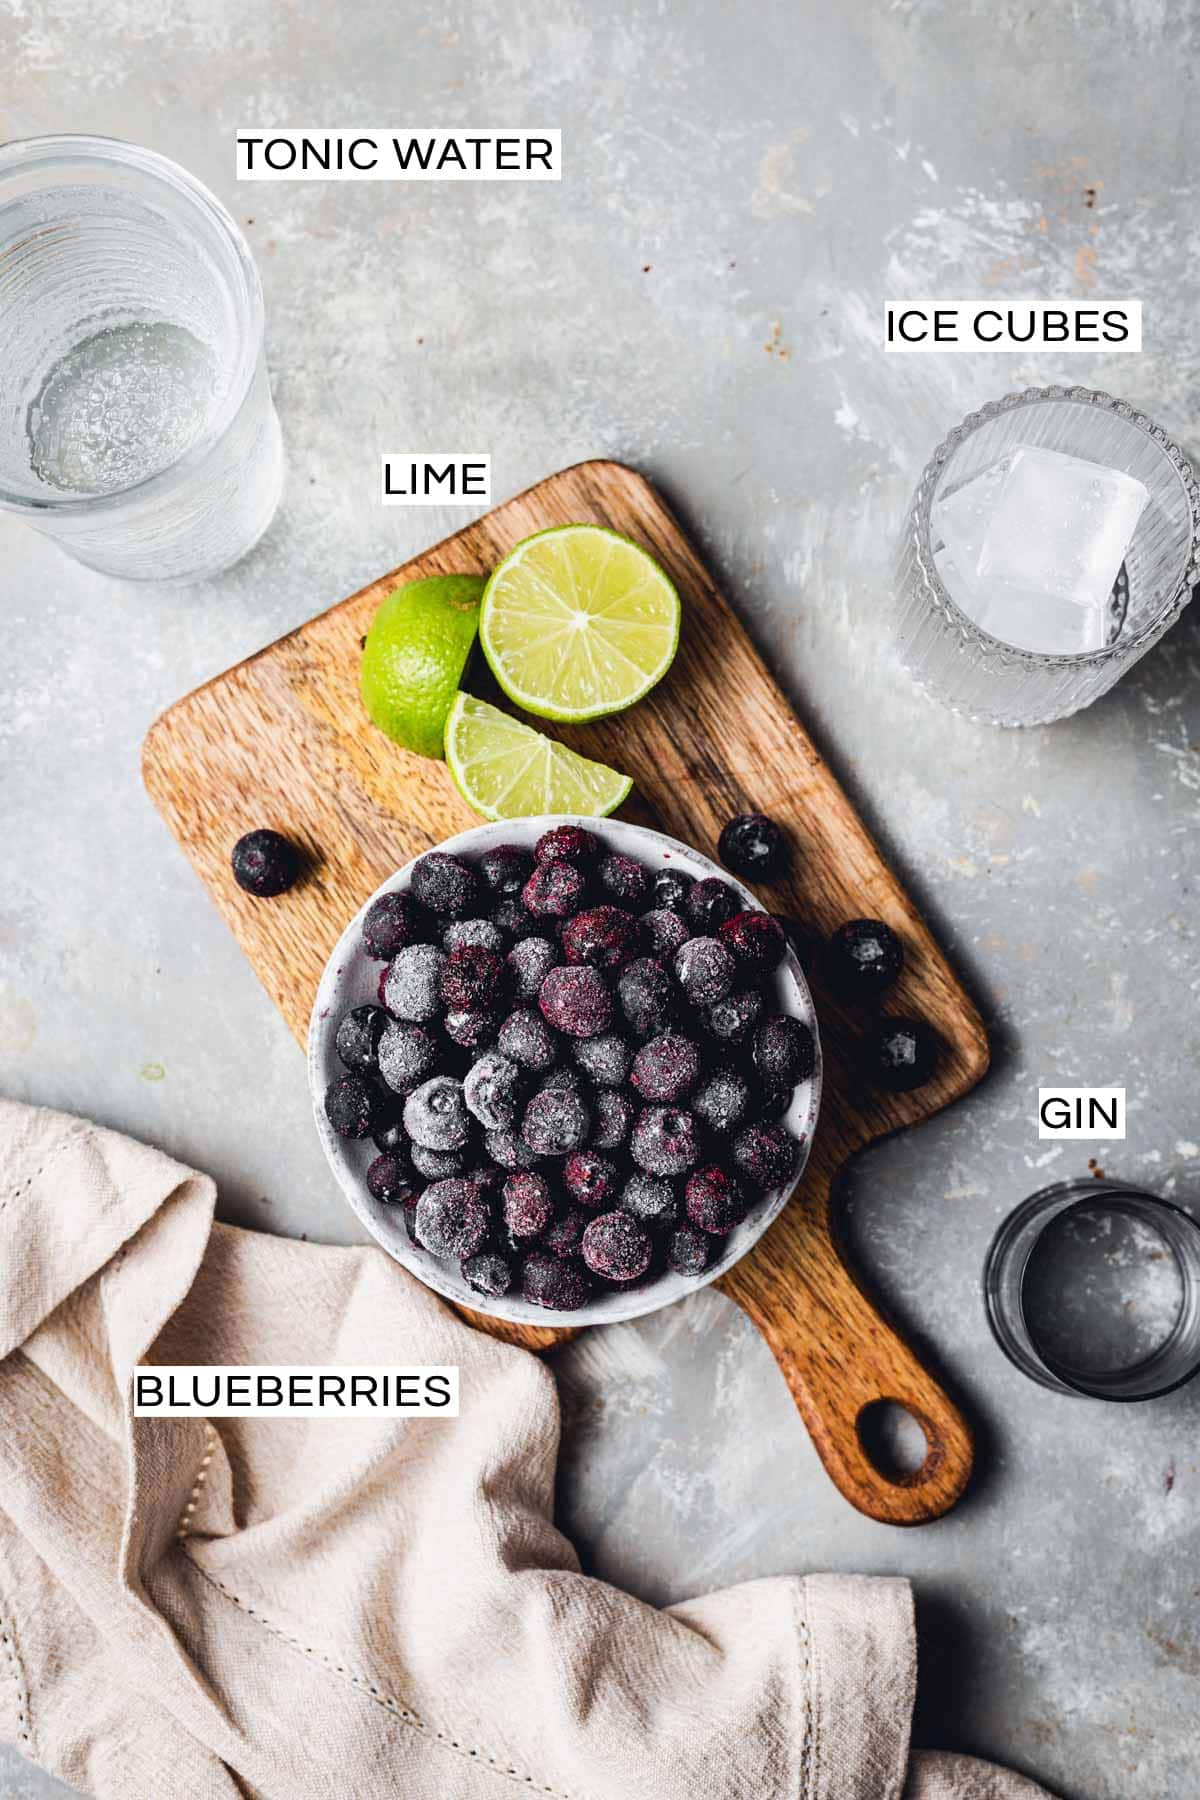 All ingredients needed to make a gin cocktail placed on a grey surface.